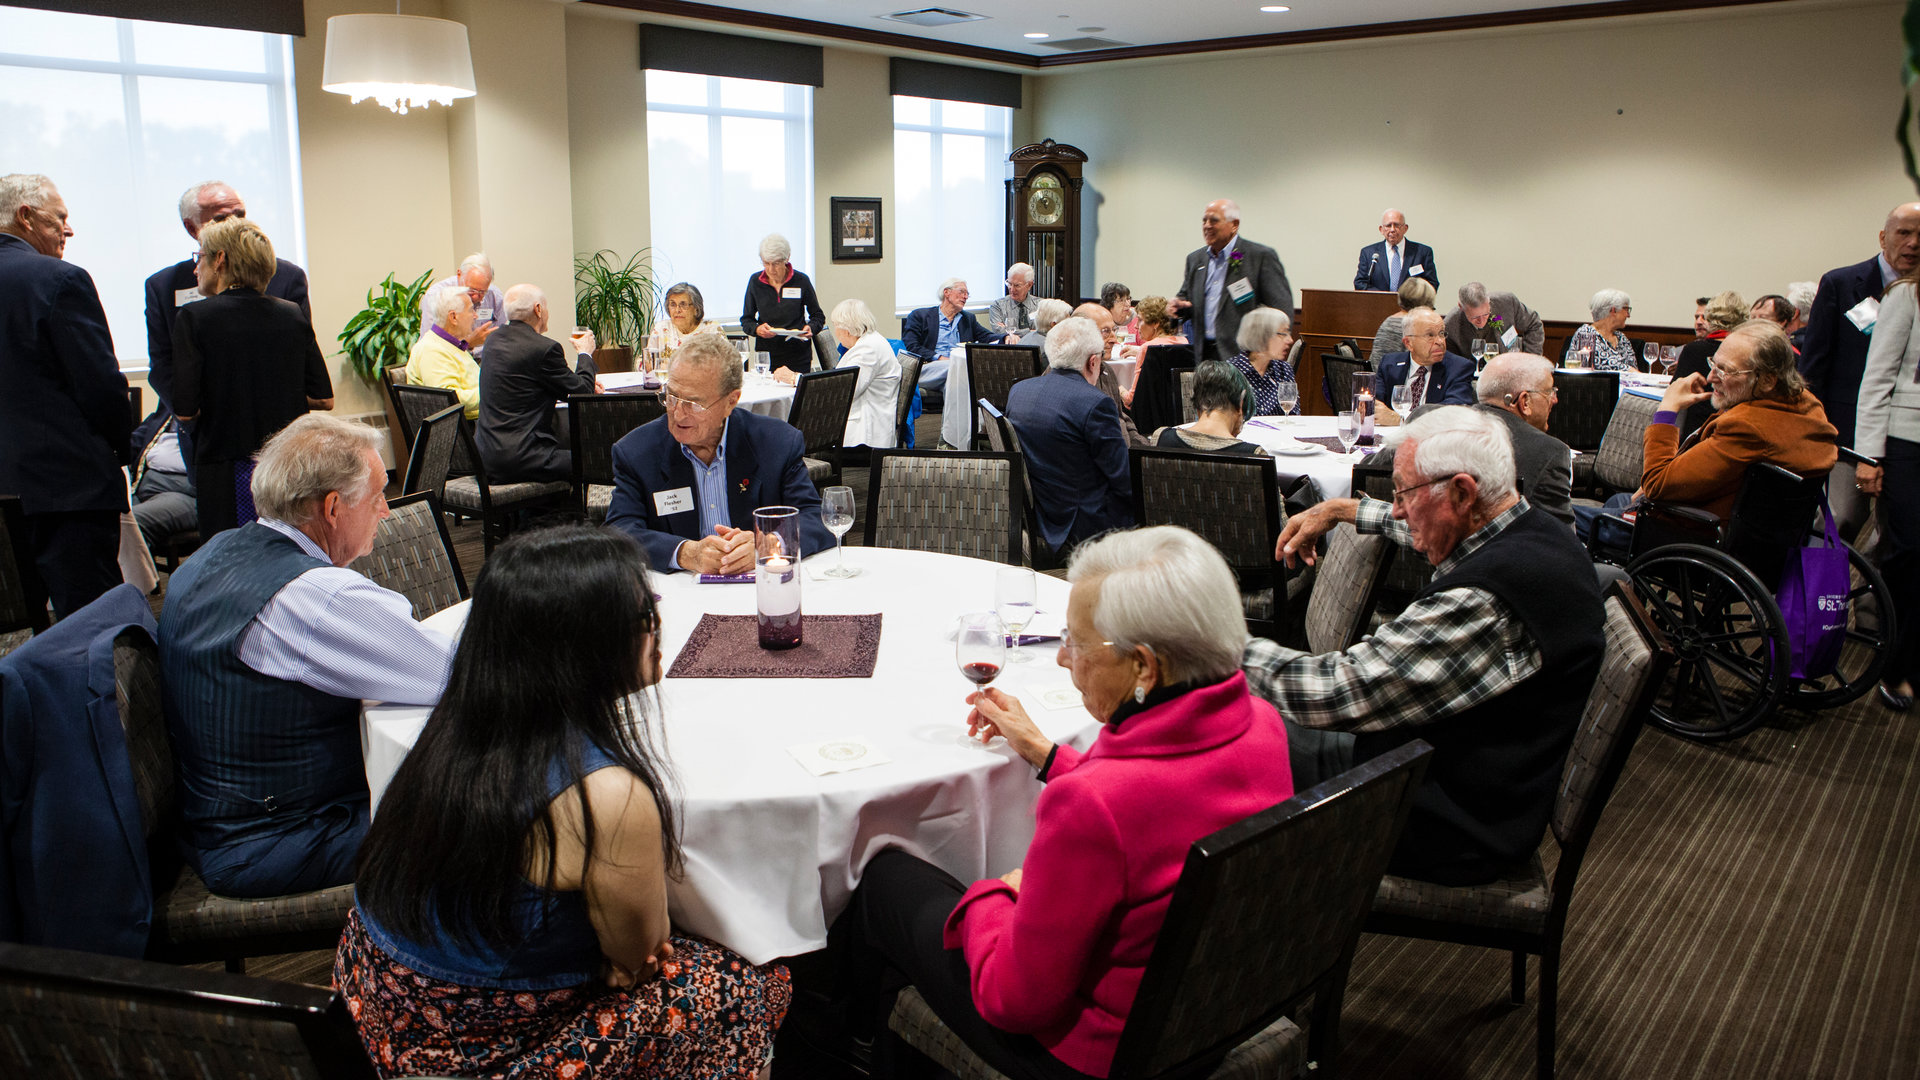 groups of Tommies chat at tables during a reunion